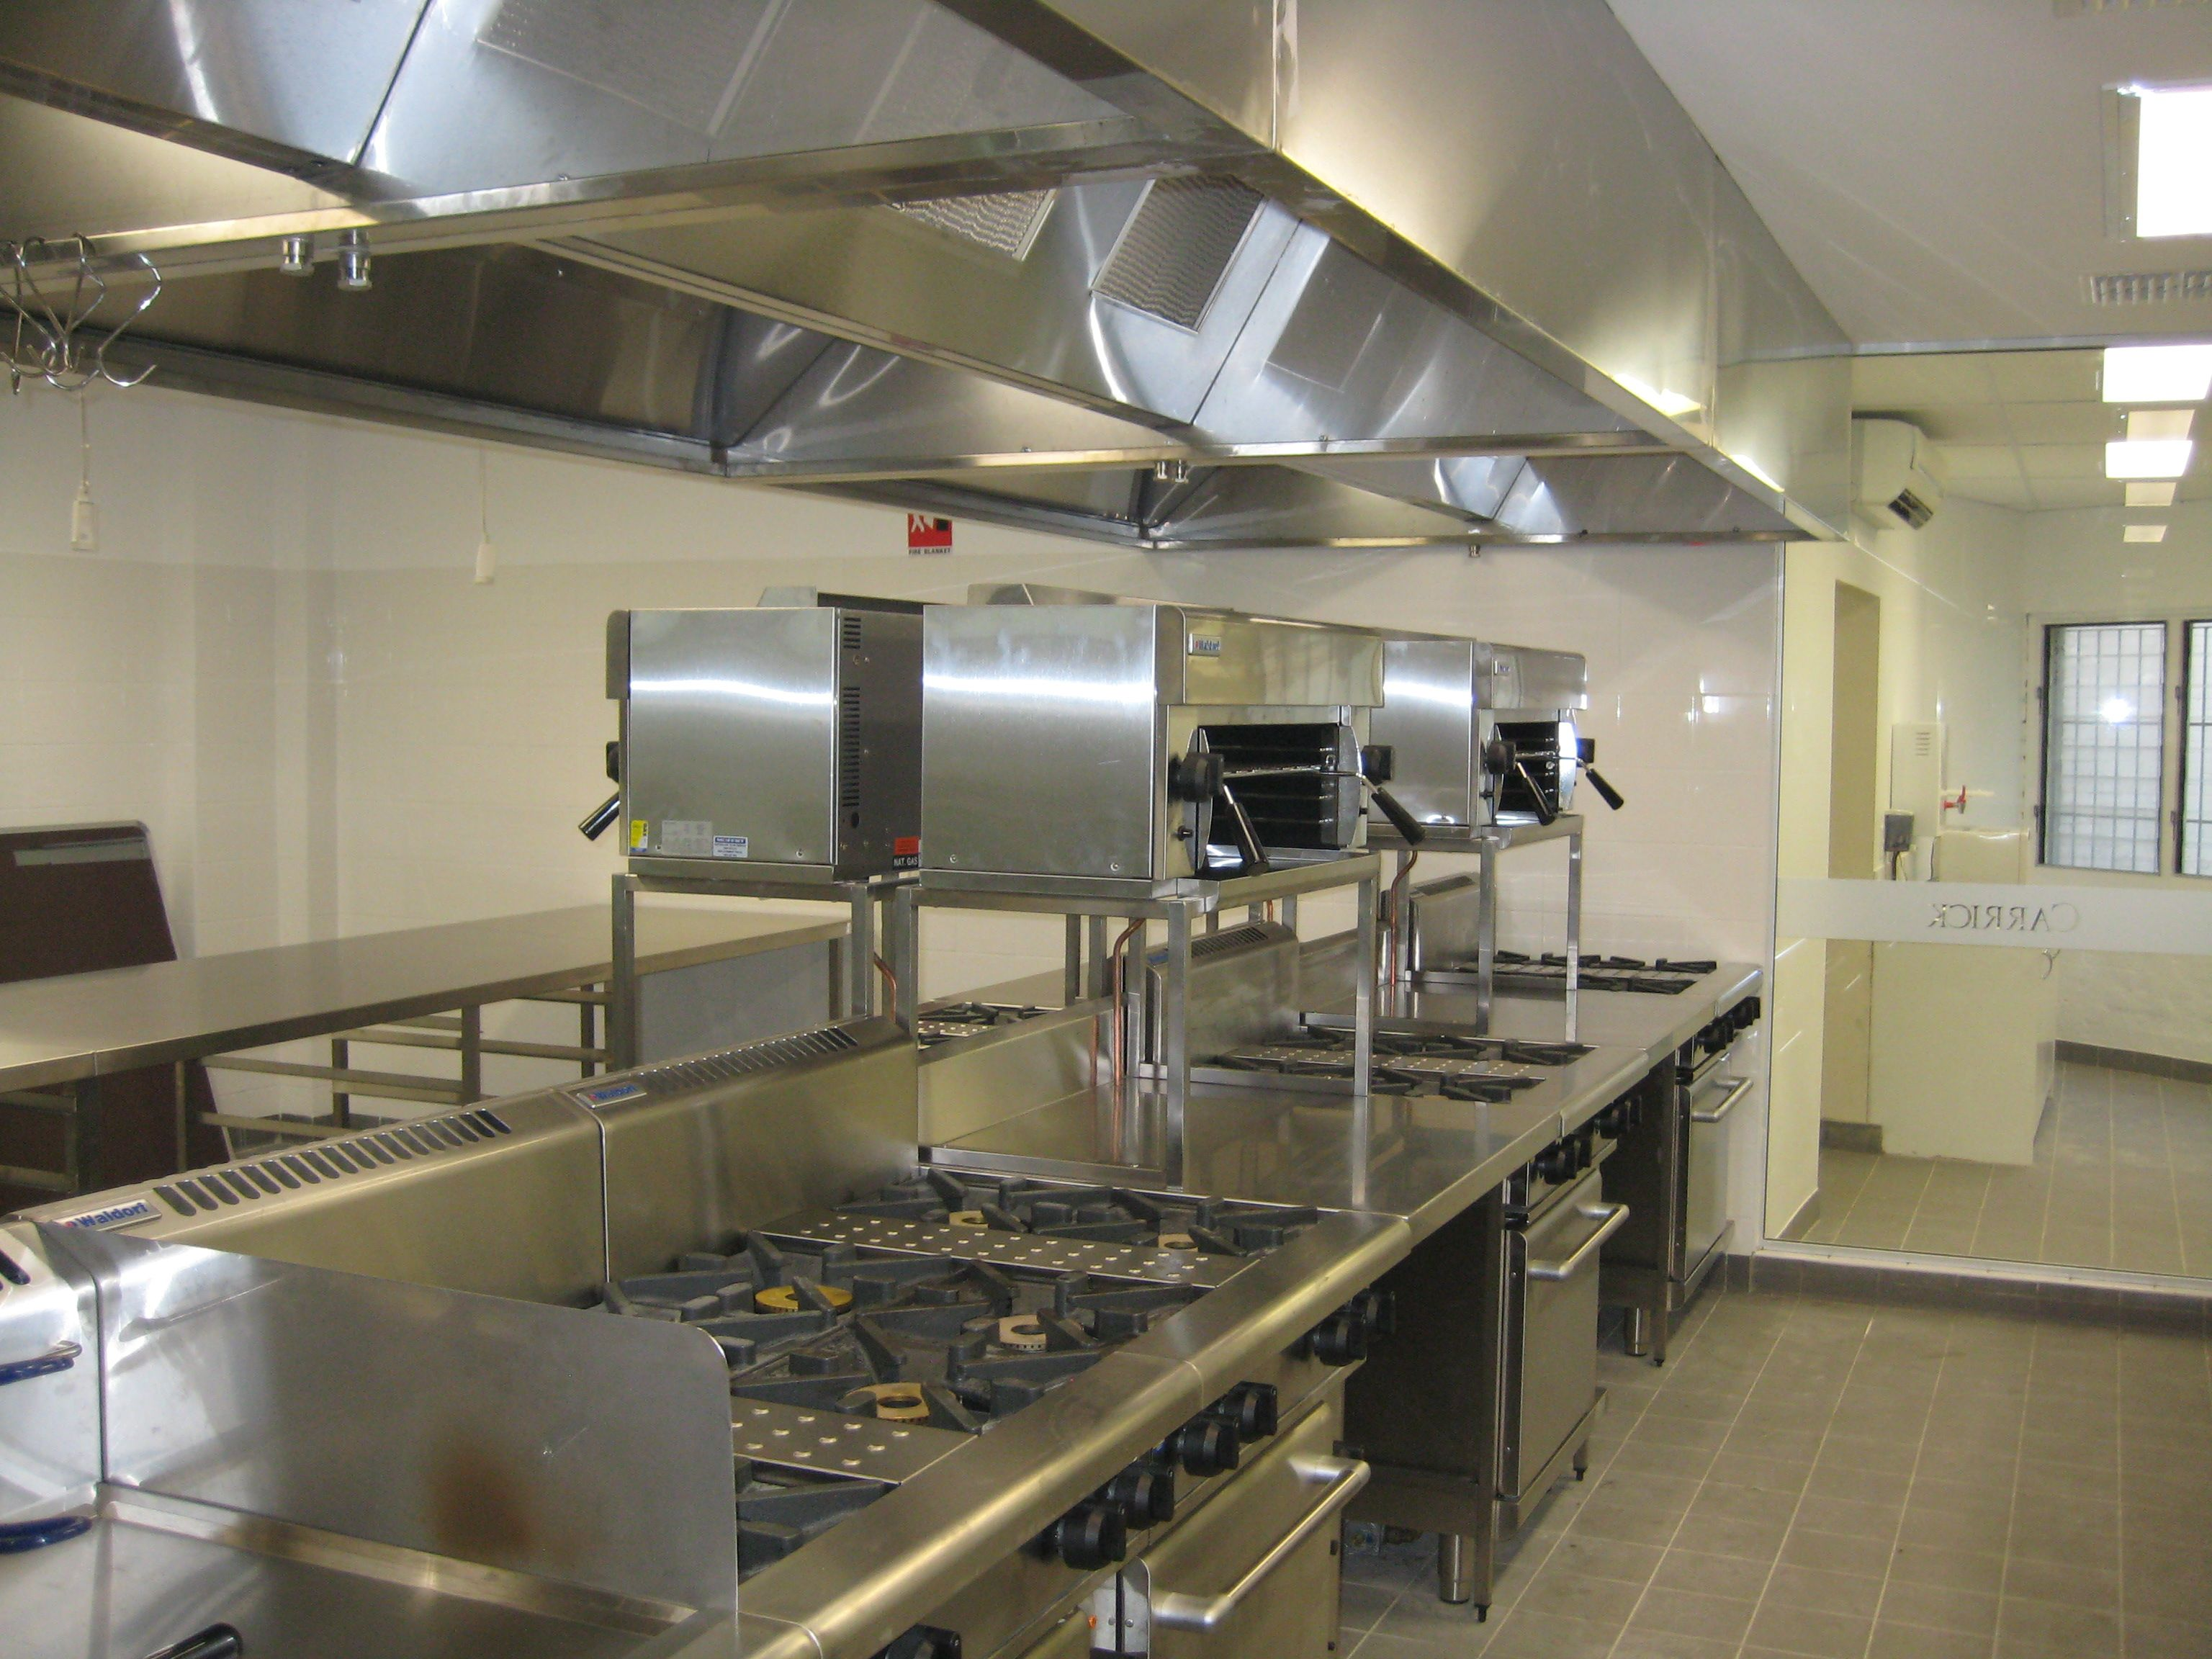 Restaurant Kitchen Ventilation Design diner exhaust range hood | restaurant hood systems and fire